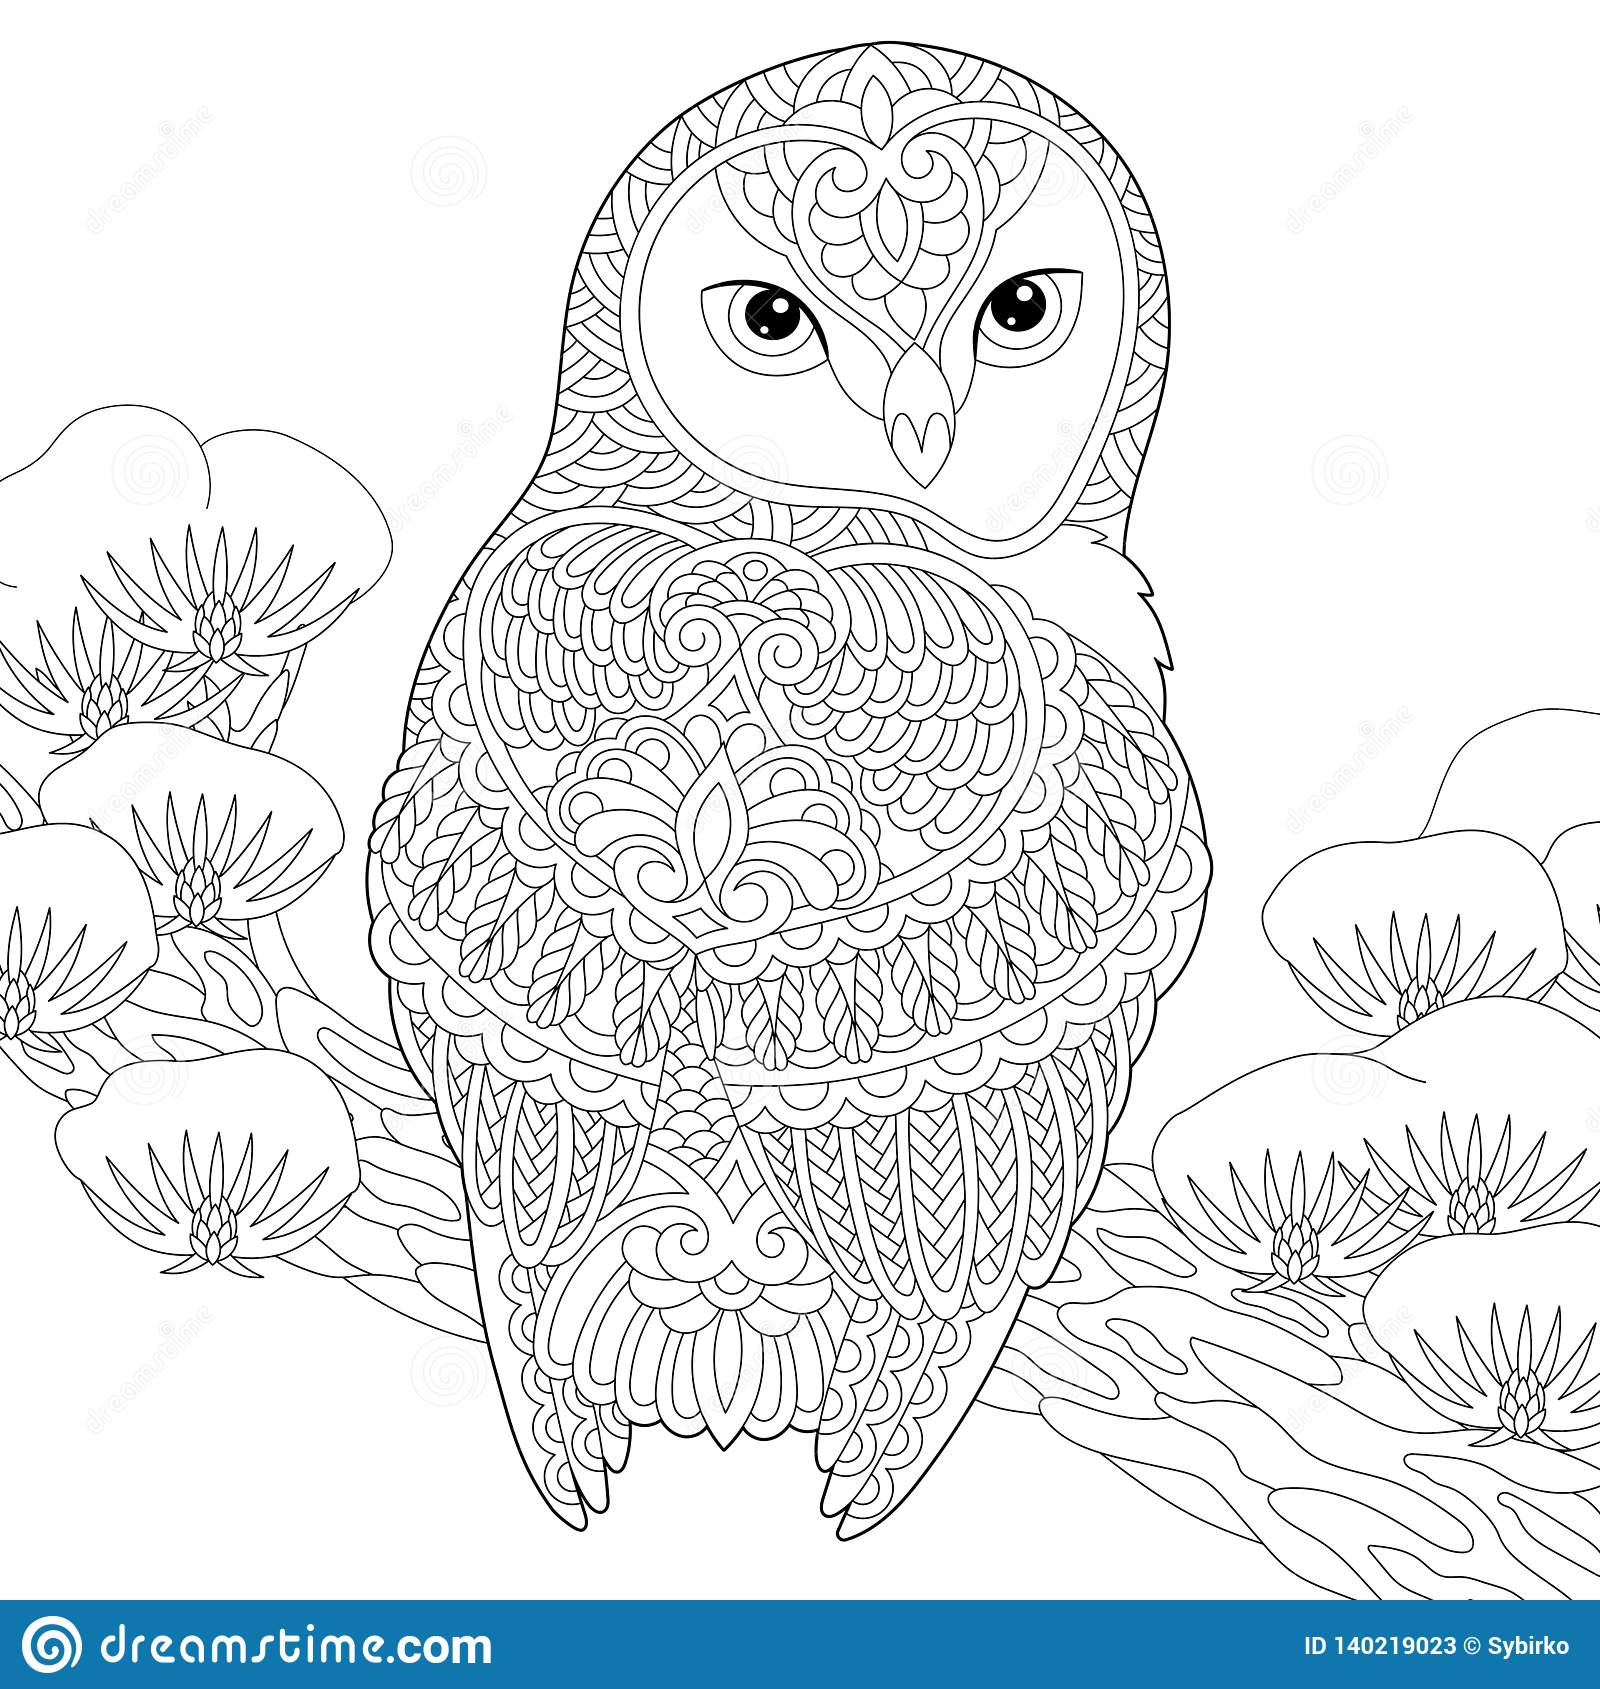 Zentangle Owl Coloring Page Stock Vector - Illustration of ...